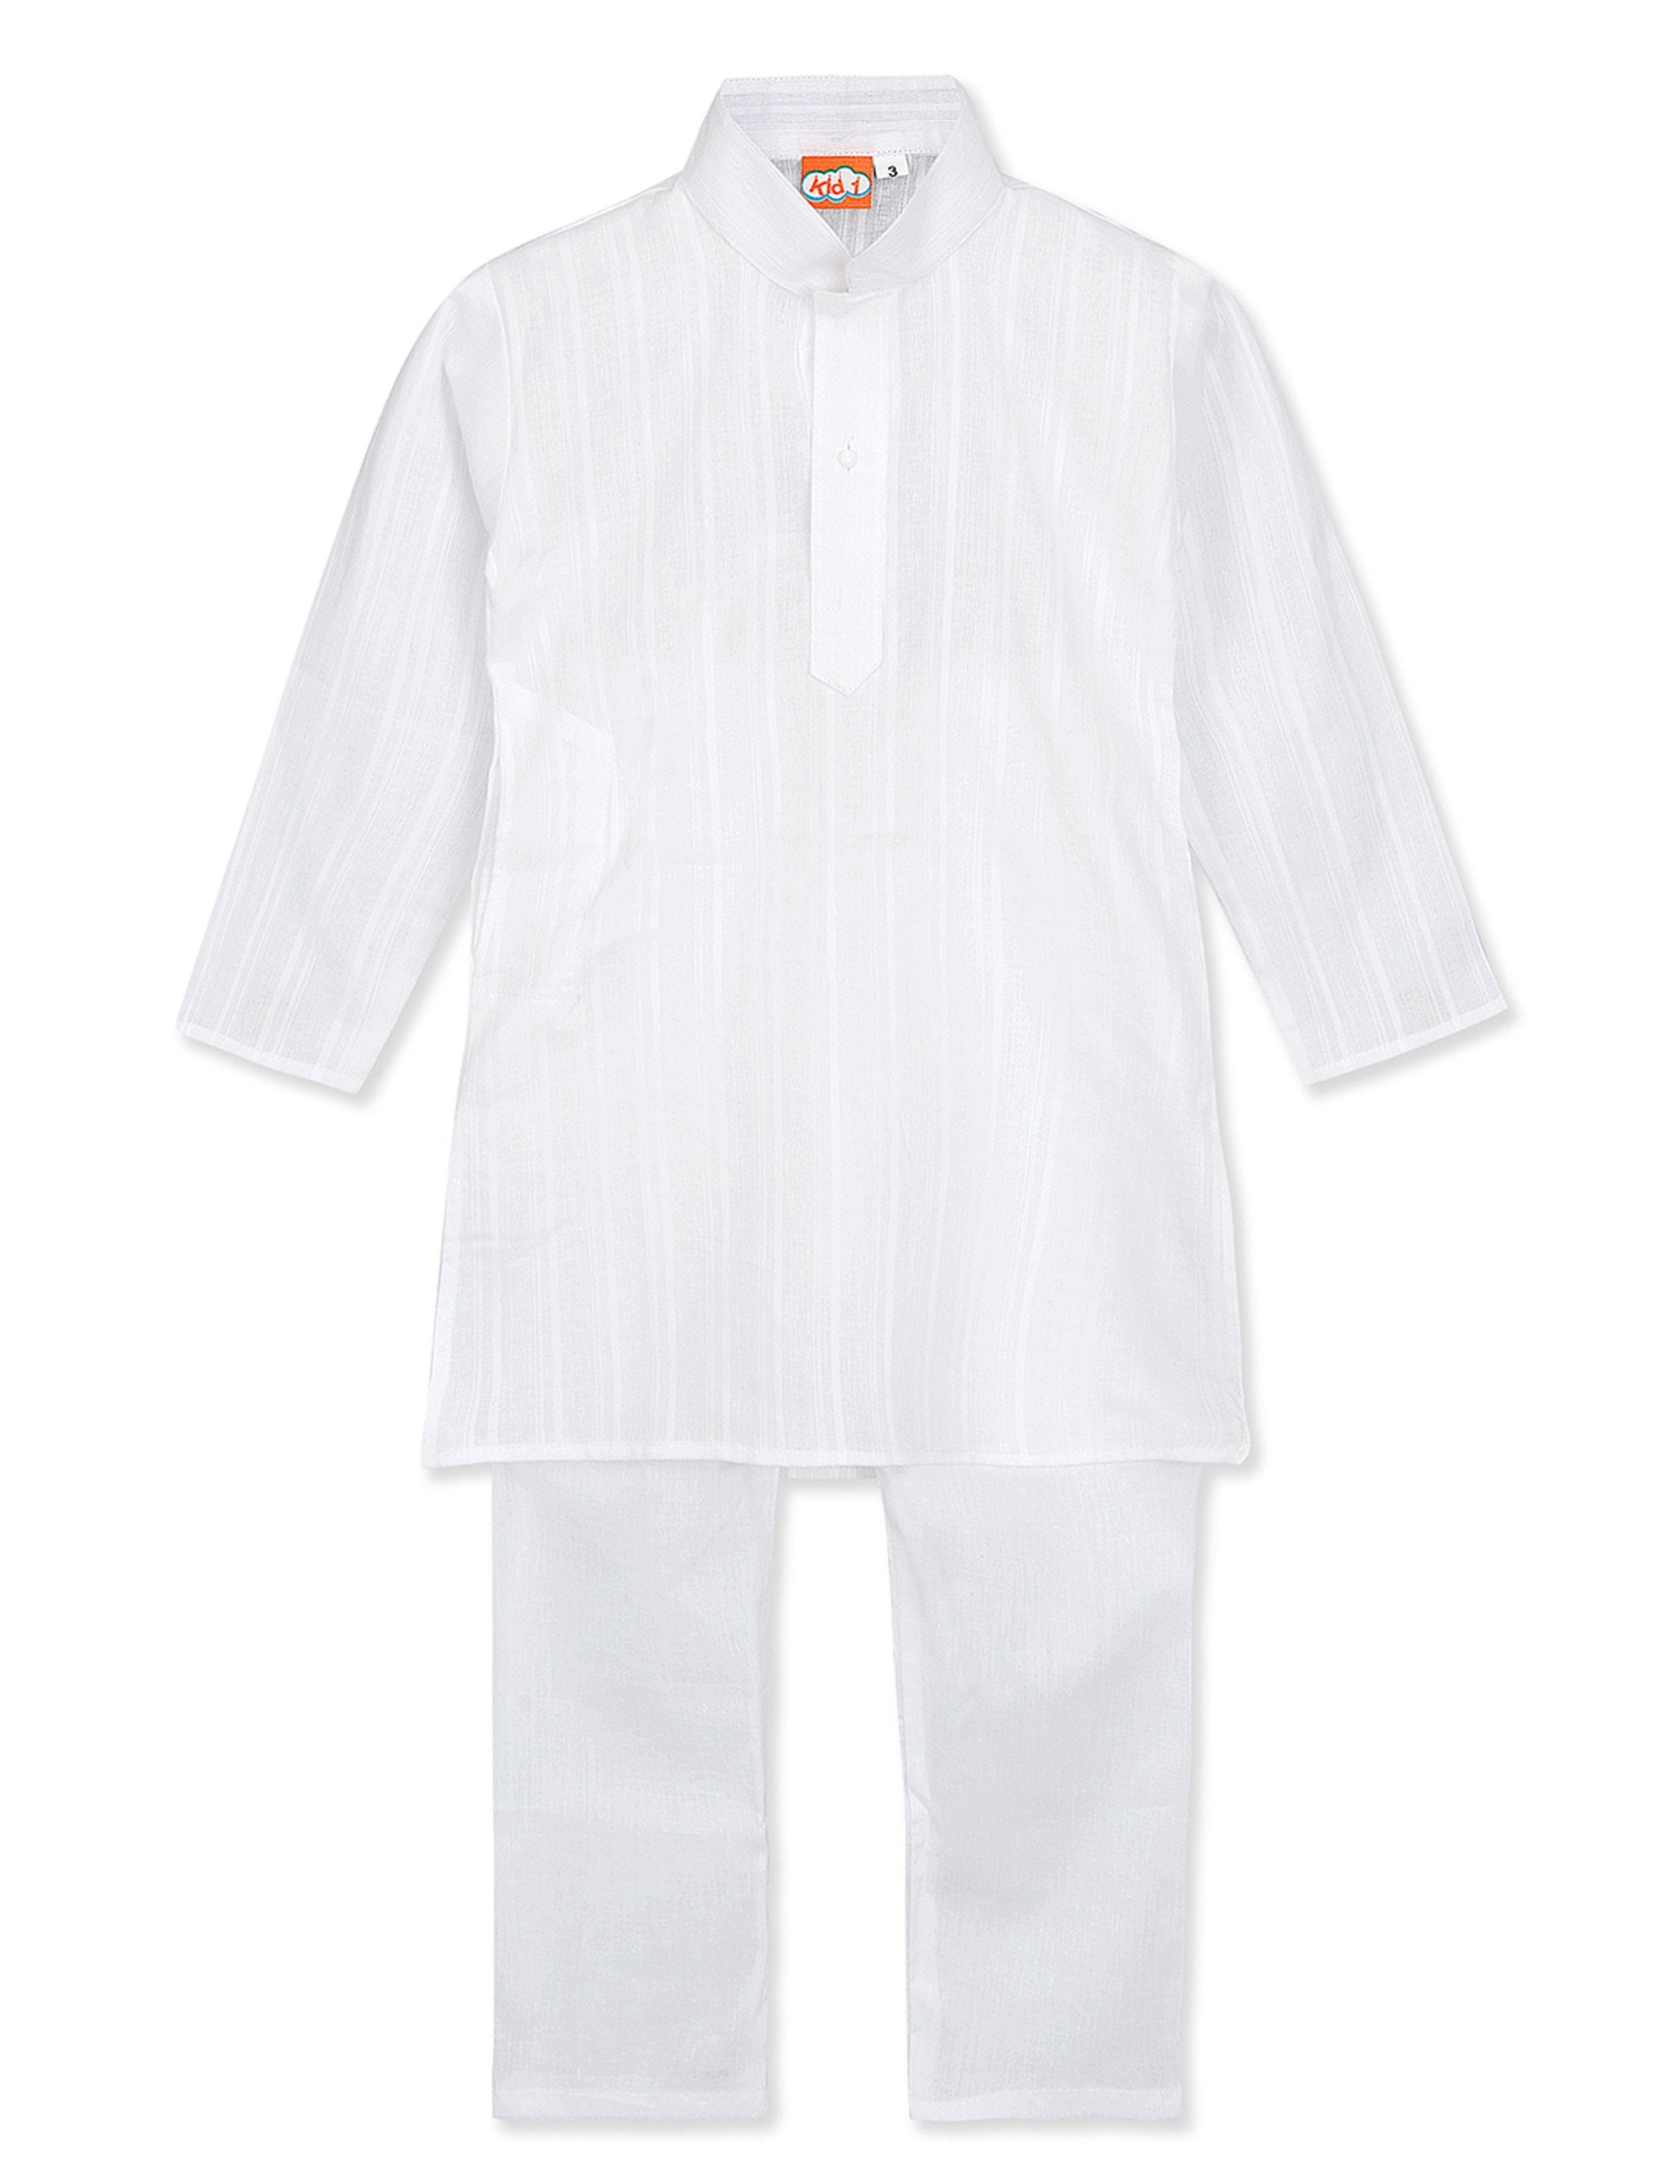 Handloom White Kurta Pyjama Set for Boys